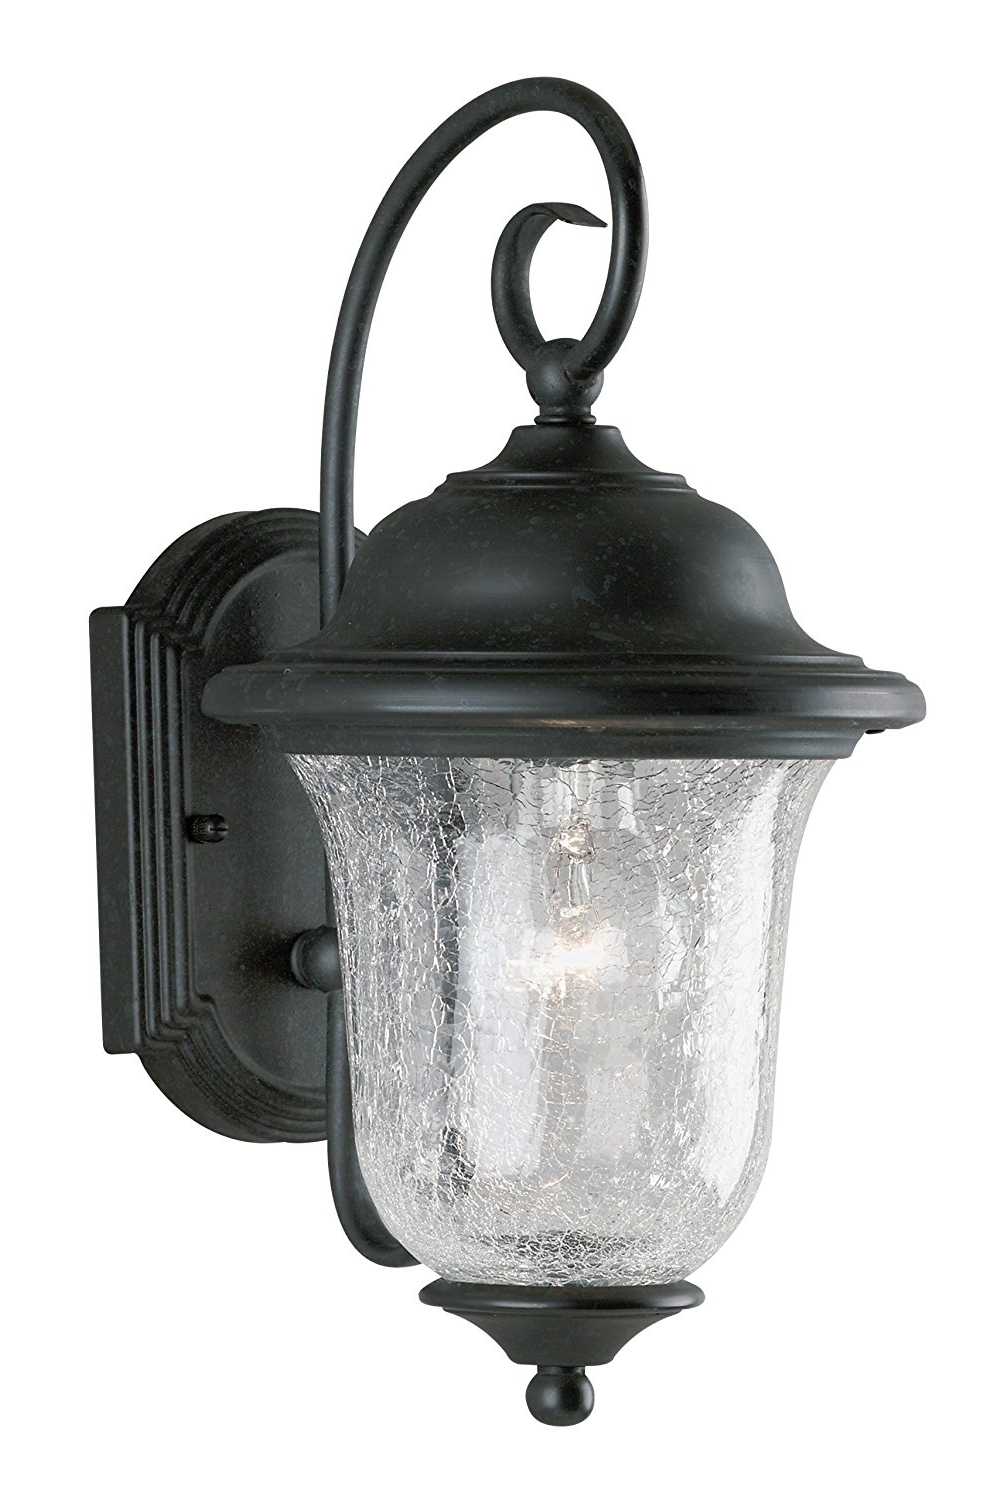 Favorite Vintage Exterior Lighting Outdoor Porch Light With Outlet Gfci Wall With Regard To Outdoor Lighting Onion Lanterns (View 4 of 20)